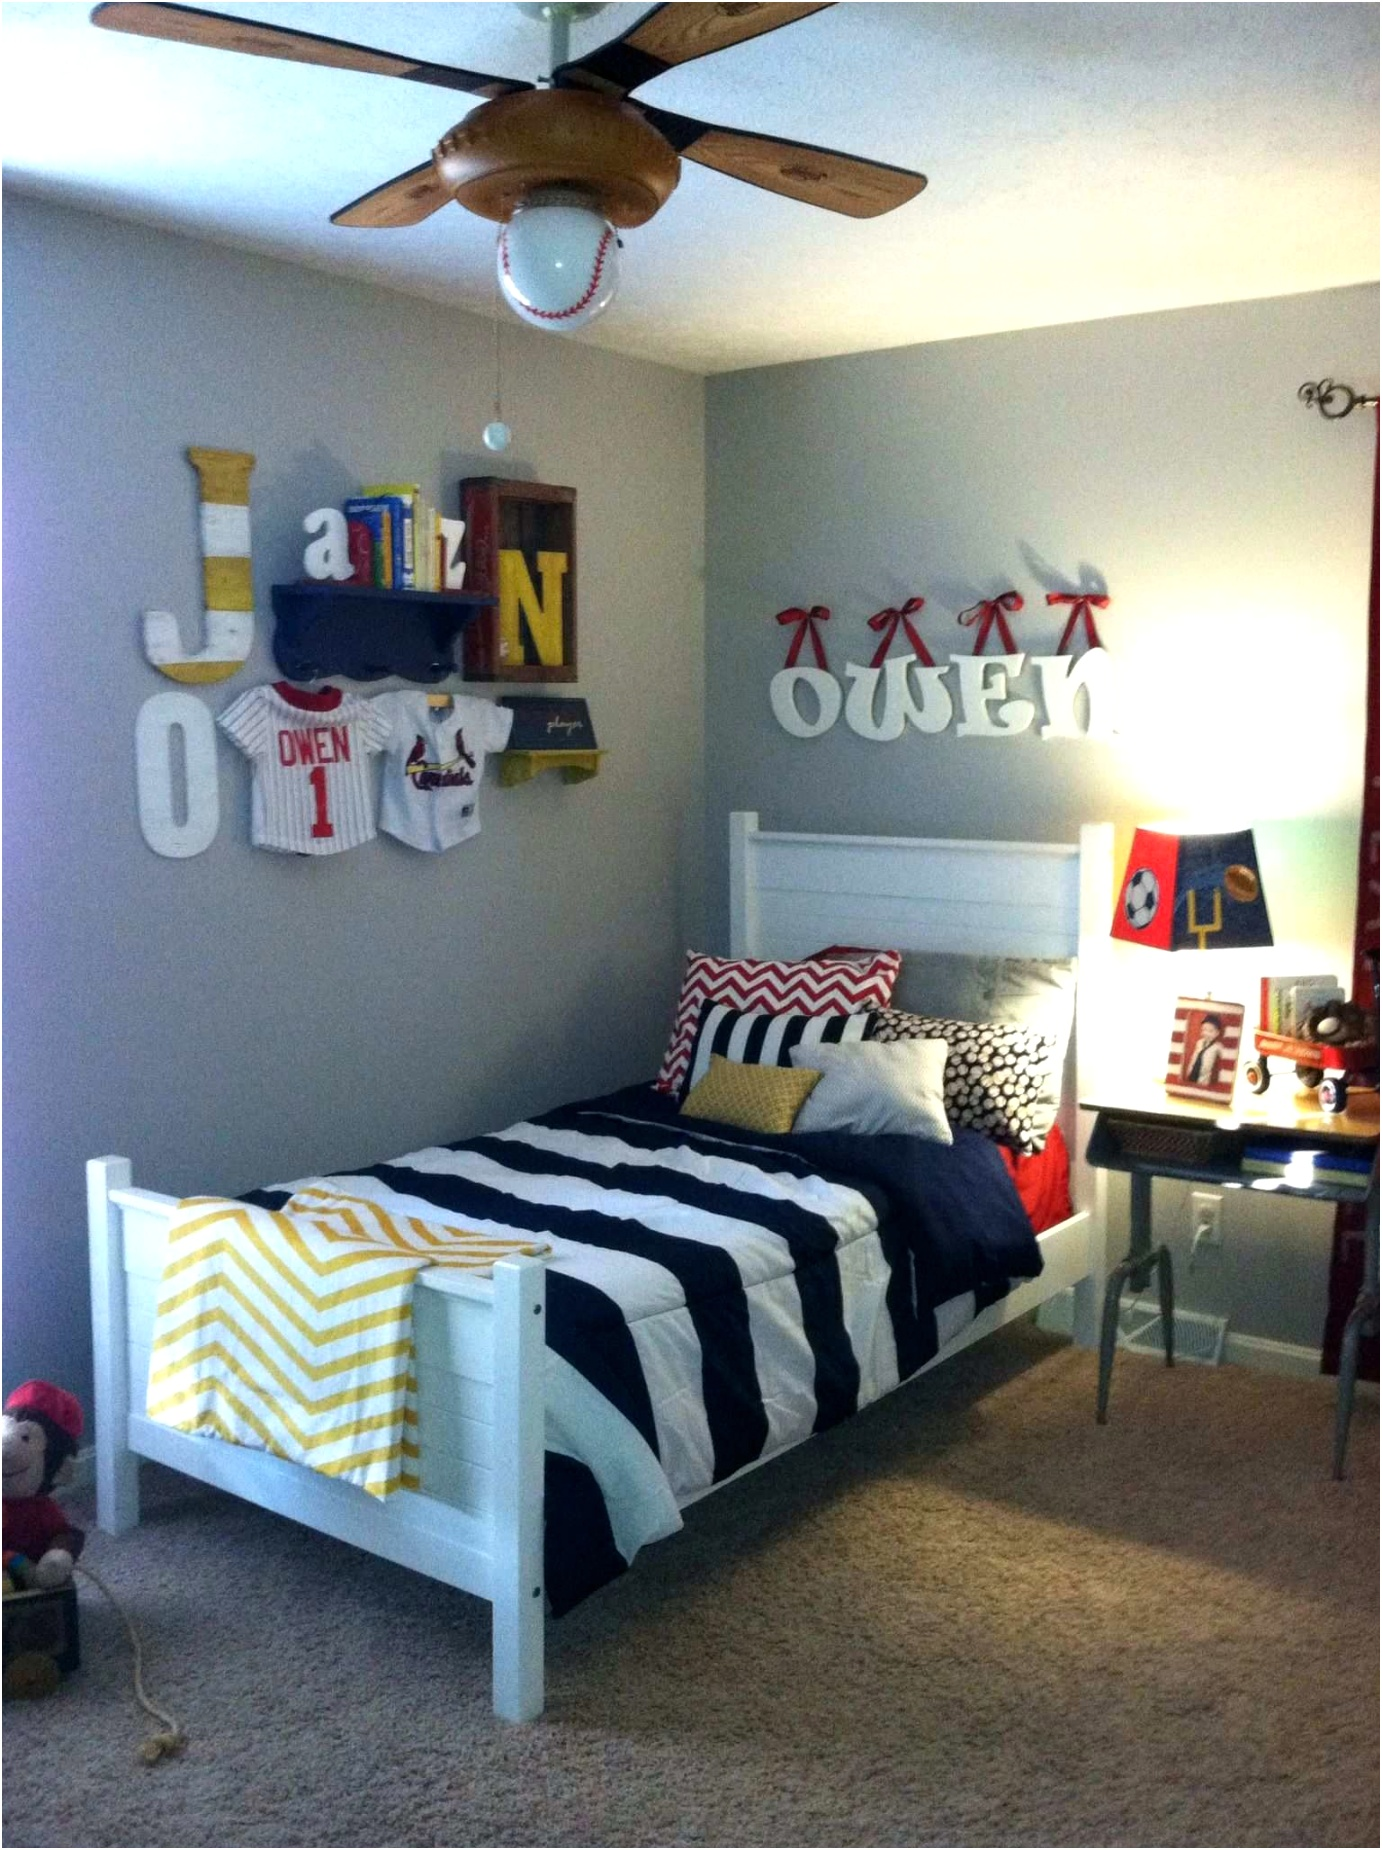 glamorous boys sports room ideas bedroom 47 really fun sports themed bedroom ideas home sports boys ideas bedroom glamorous room